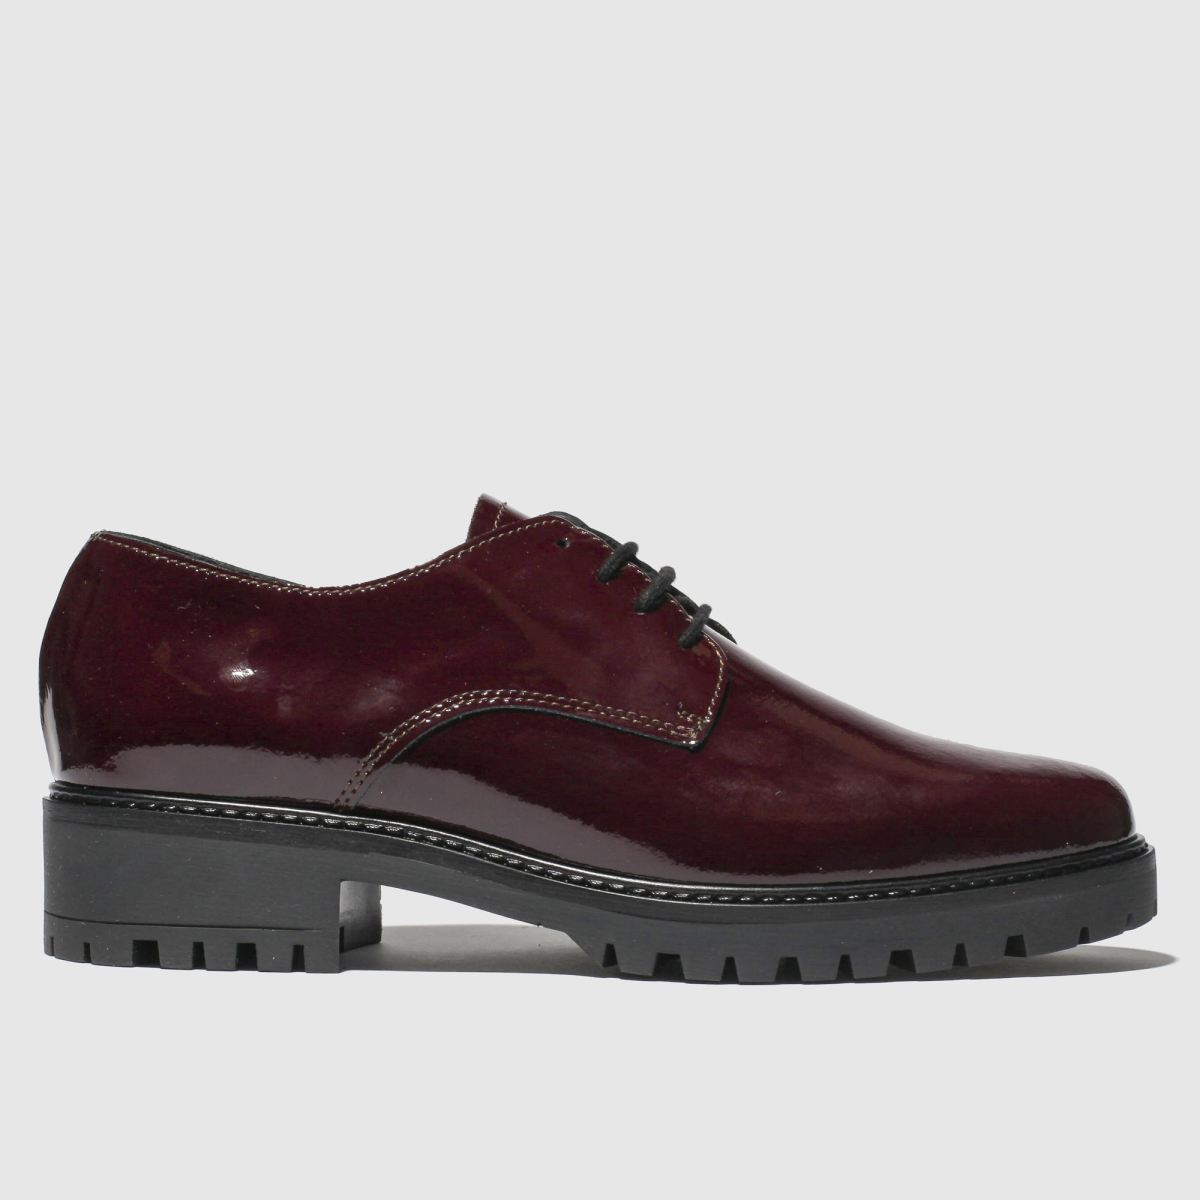 schuh Schuh Burgundy Asteroid Flat Shoes